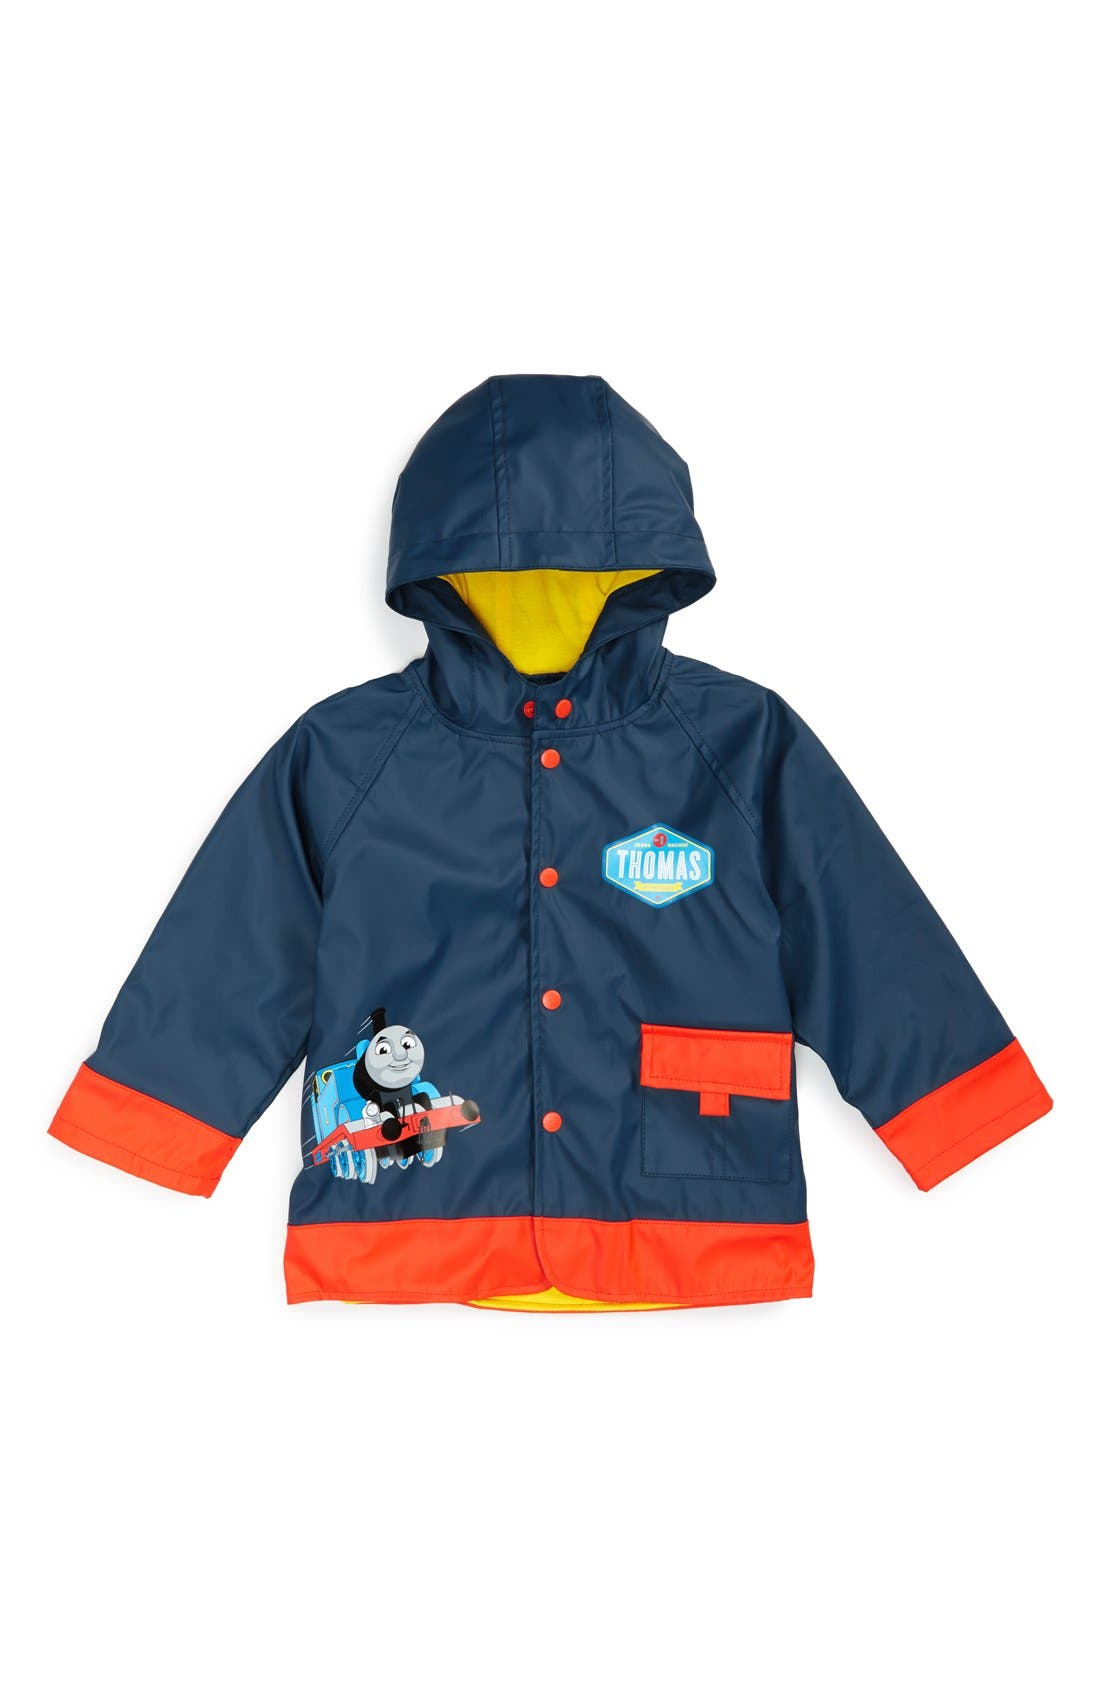 'Thomas the Tank Engine' Raincoat,                         Main,                         color, 421